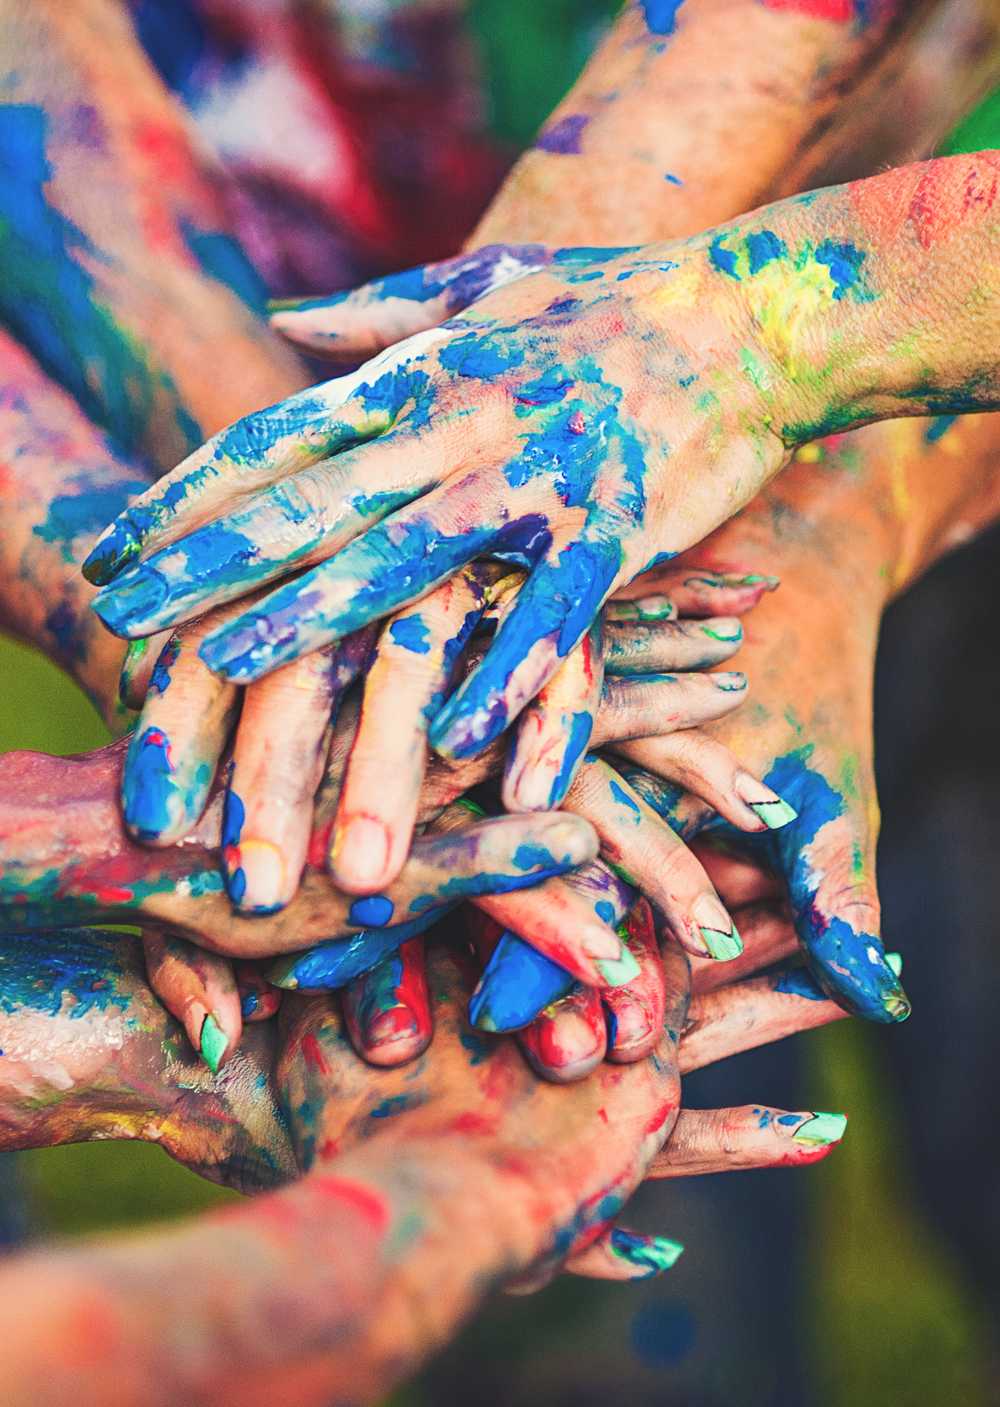 Paint covered hands join together after a team building event